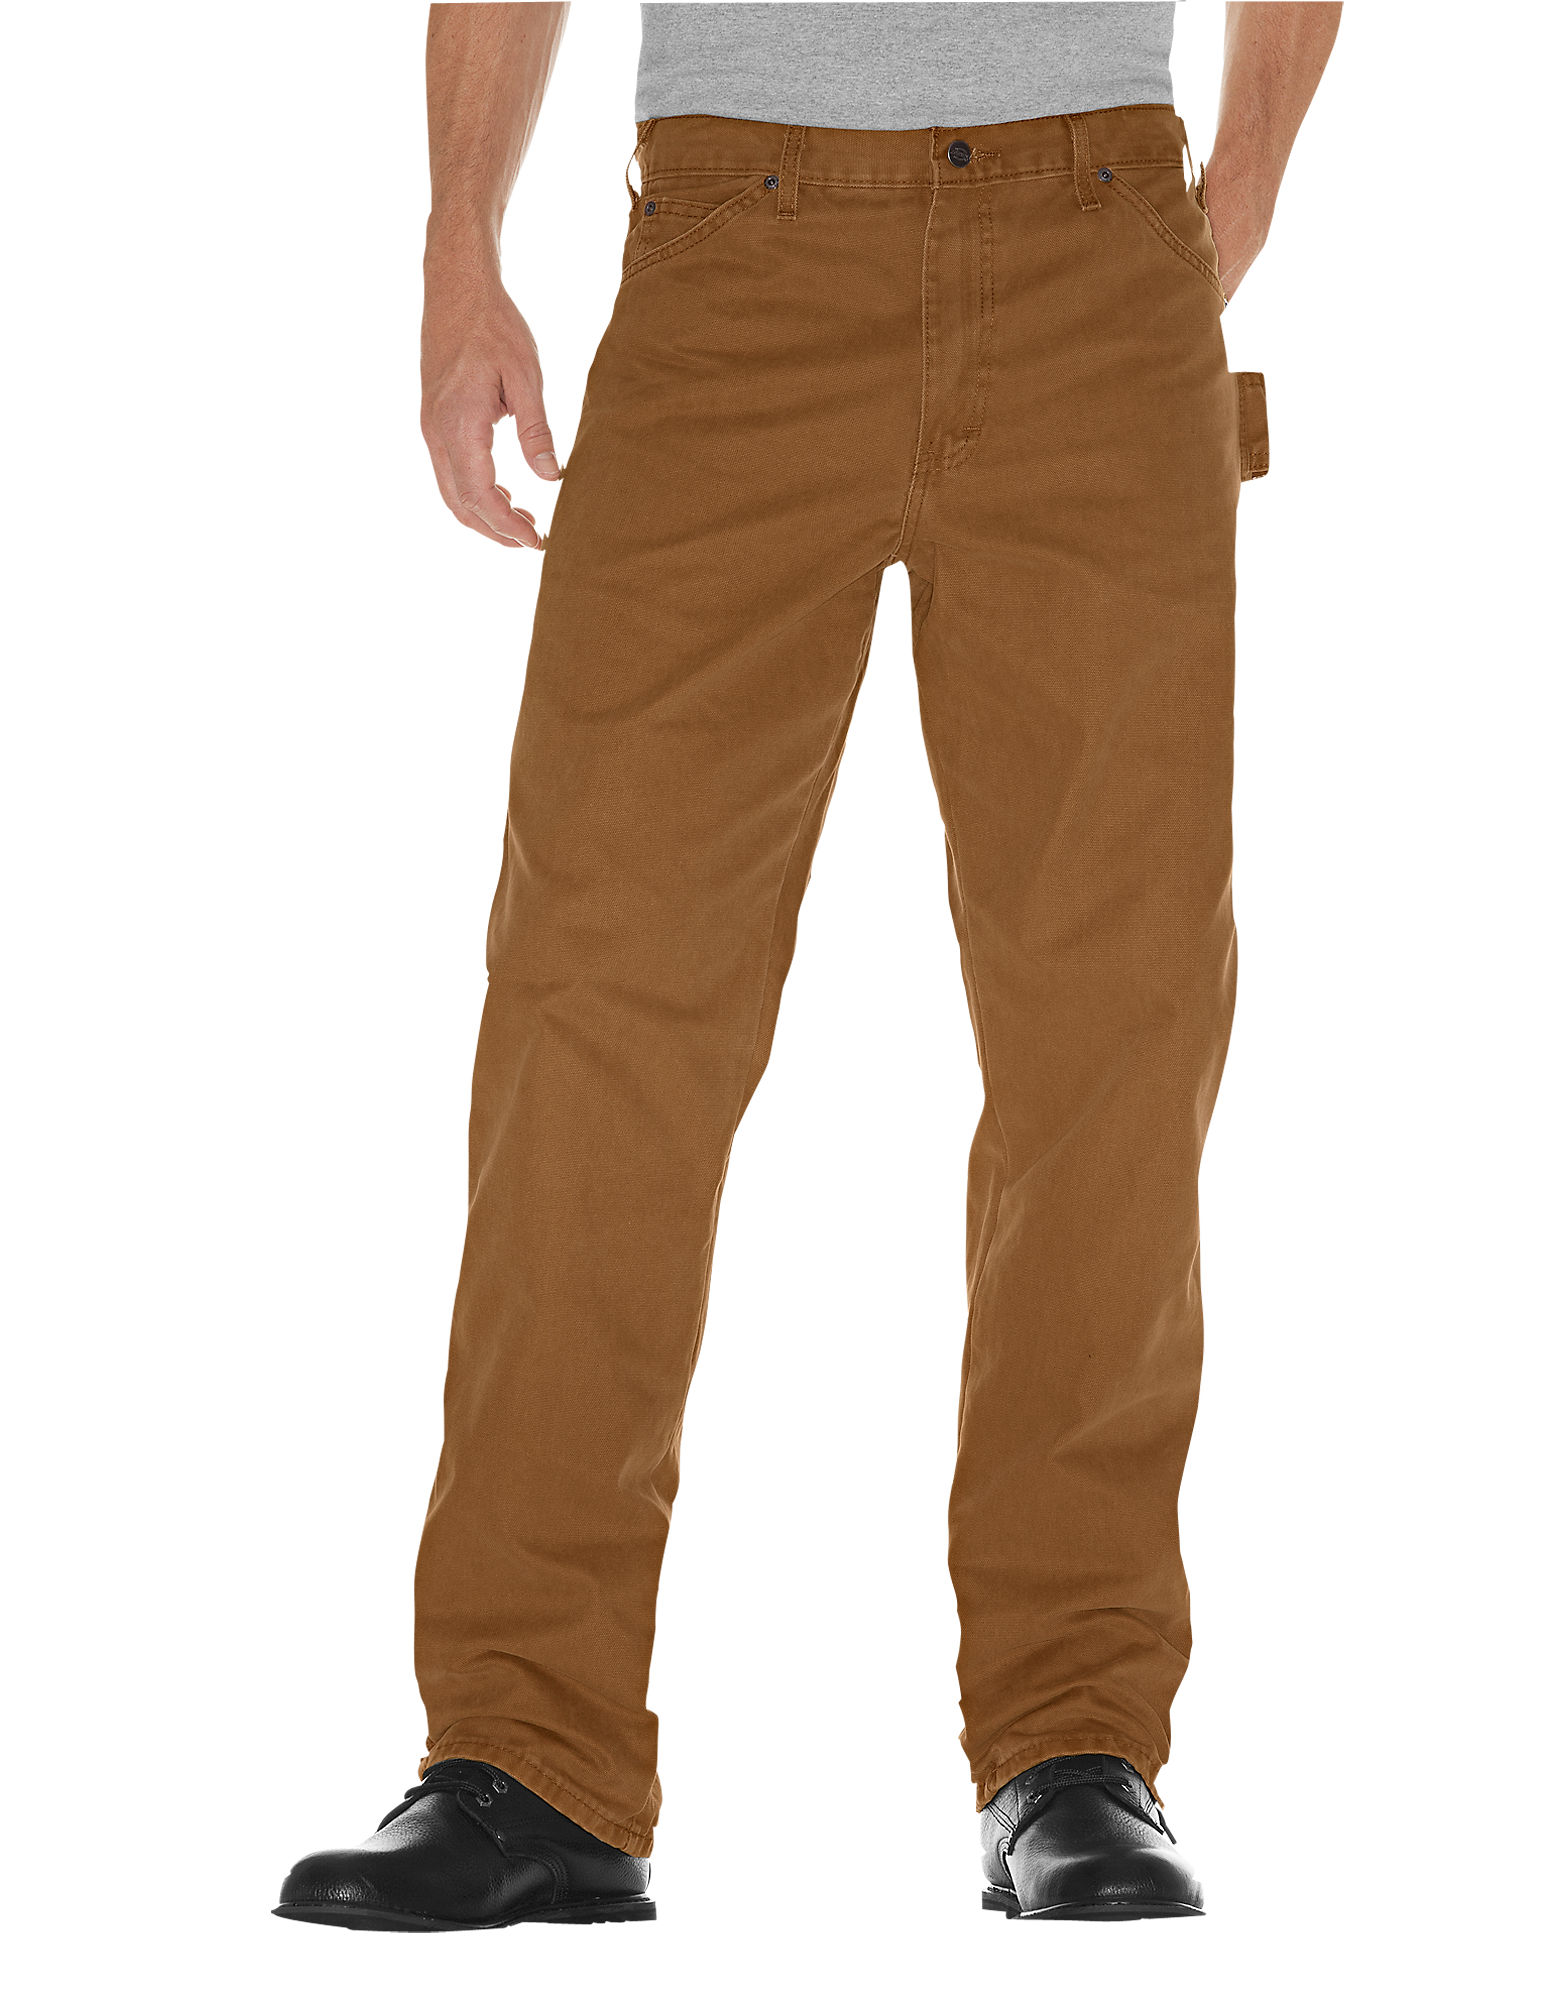 Relaxed Fit Straight Leg Sanded Duck Carpenter Jean-Dickies Canada